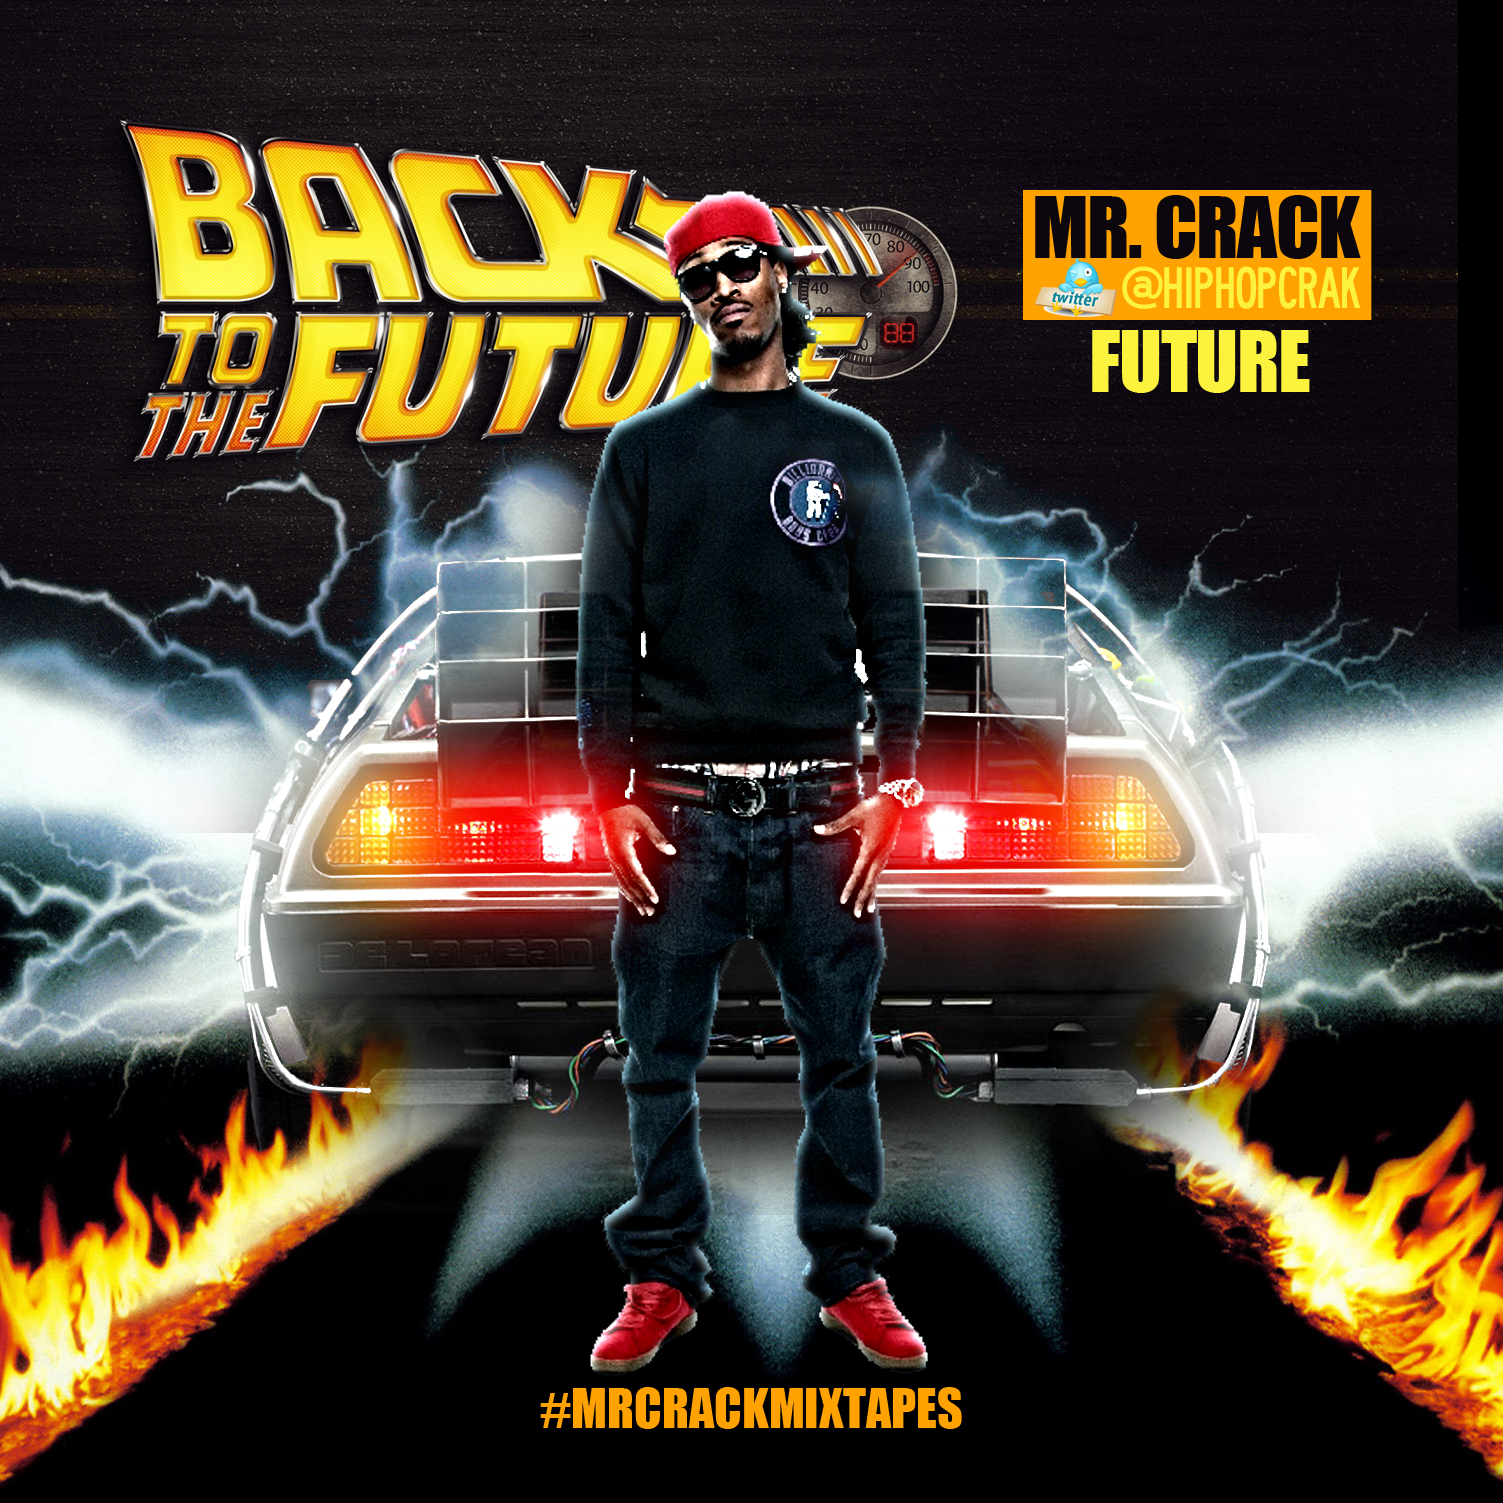 crack cocaine back to the future In 2016, the monitoring the future survey found that 23 percent of 12 th graders tried cocaine in any form in the prior year effects of cocaine and alcohol cocaine, both powdered and freebase , causes stimulant effects and side effects, such as:.